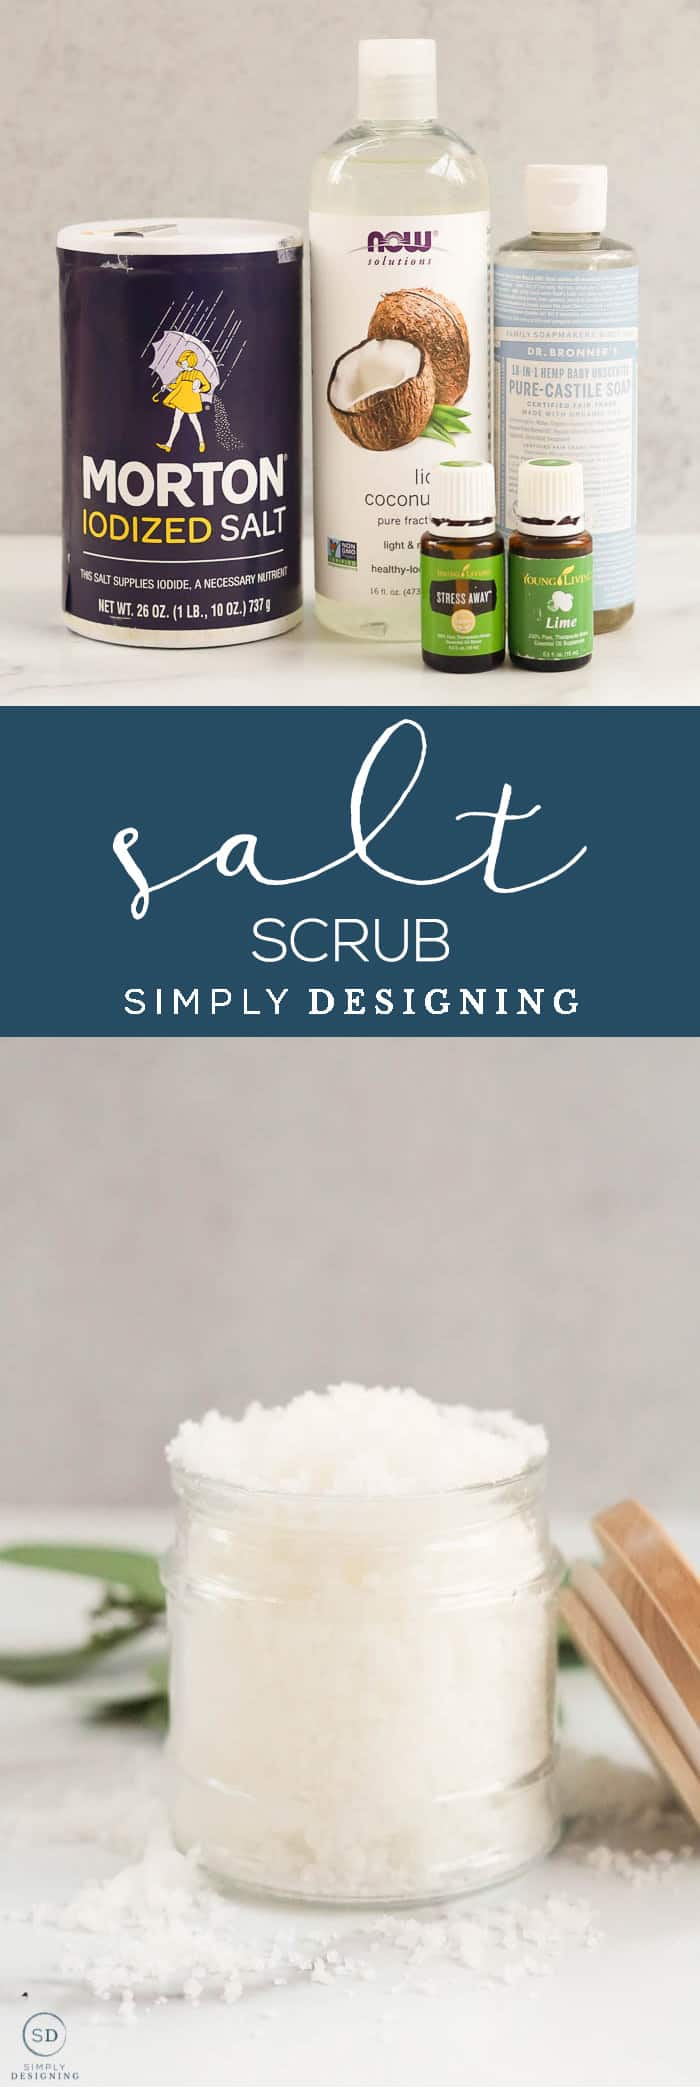 This delicious smelling all-natural Salt Scrub makes scrubbing and exfoliating easy and effective so you can enjoy silky smooth skin